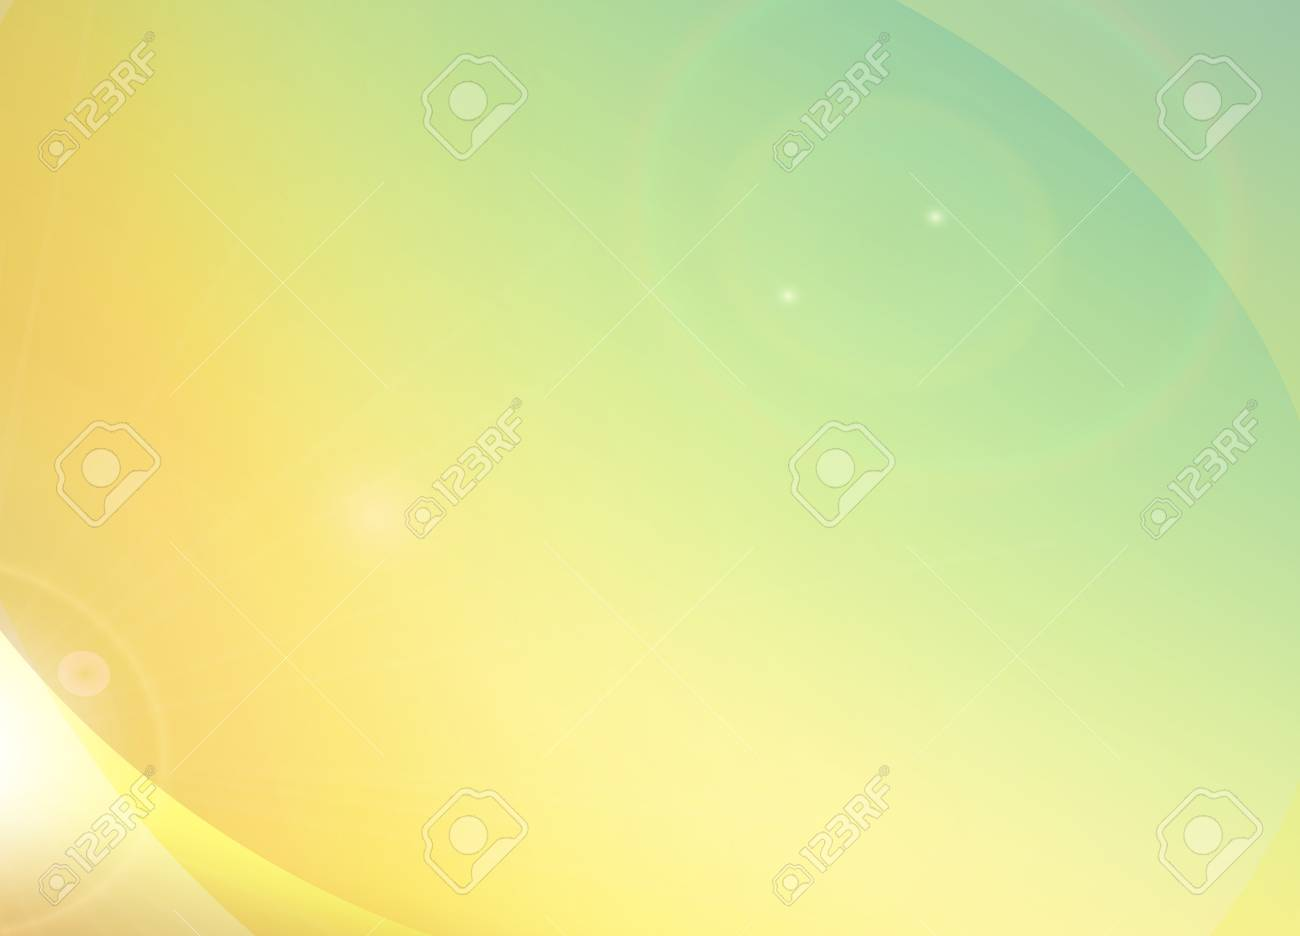 Summer Feeling, Light Yellow Orange Green Graphic Background ...